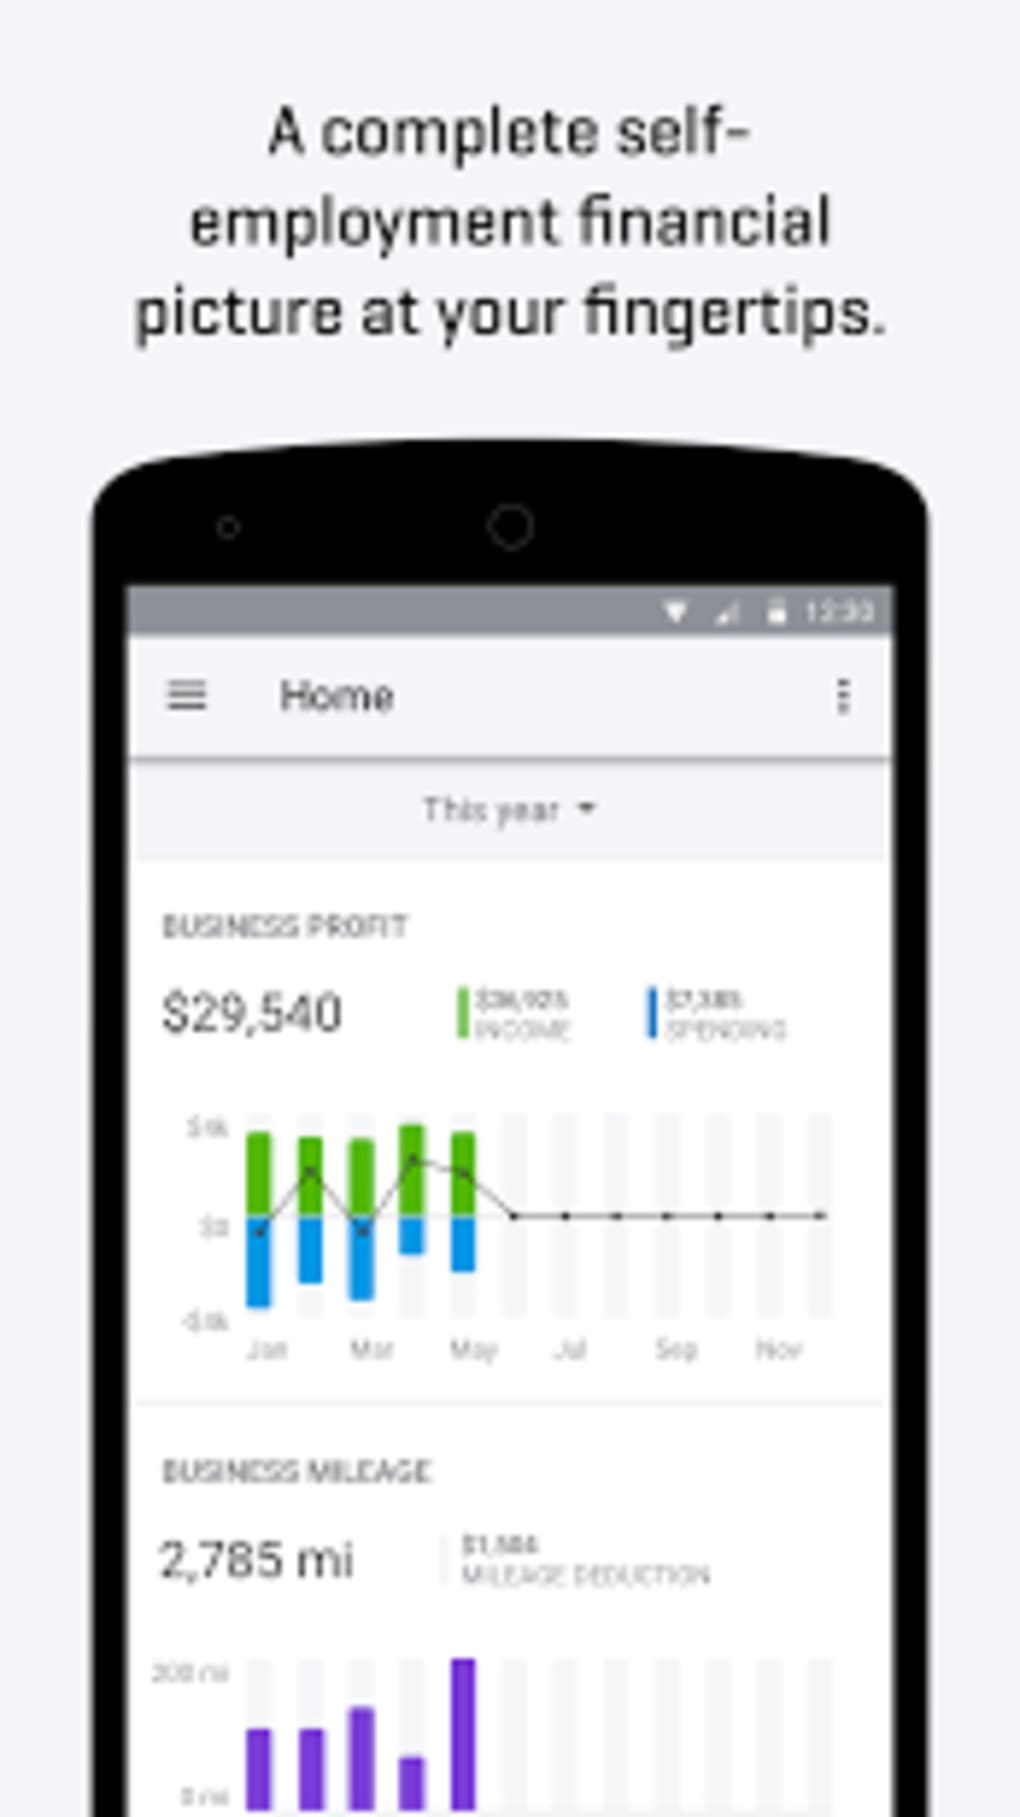 QuickBooks Self-Employed for Android - Download